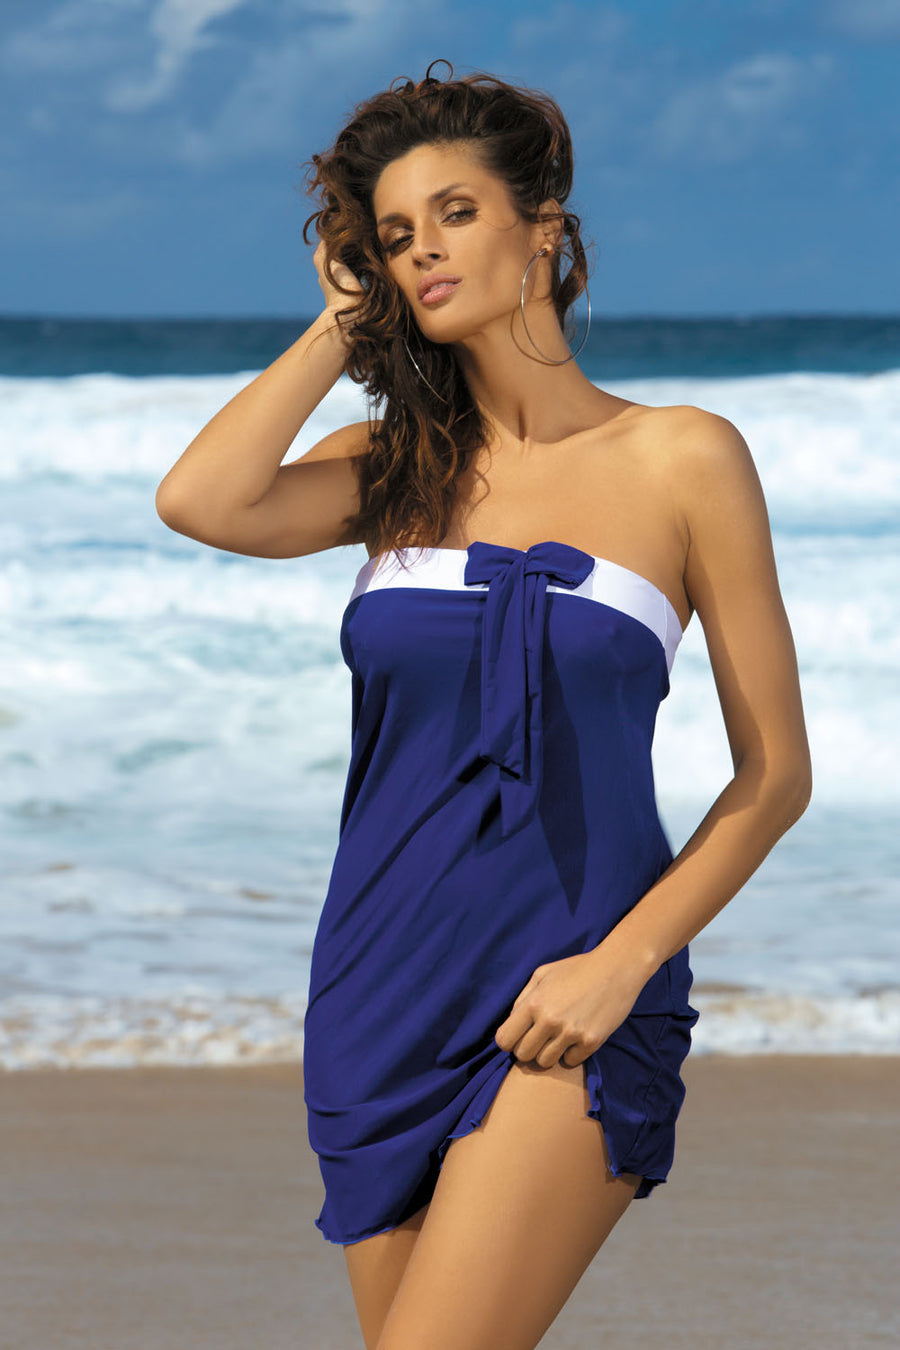 Beach tunic model 30383 Marko